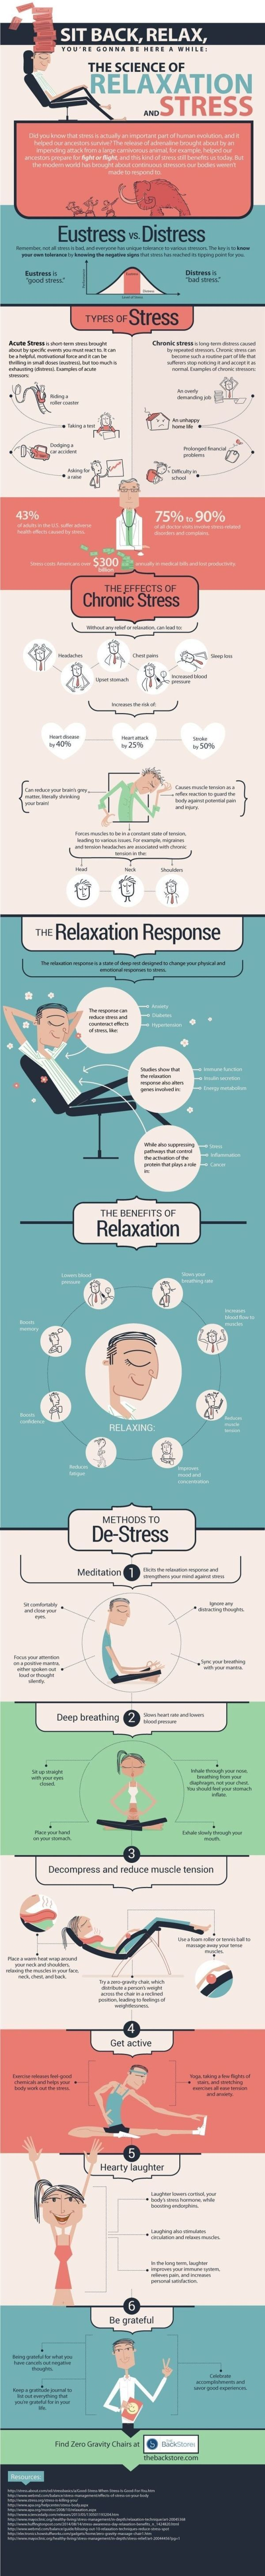 Tweet Tweet We all have to deal with stressful situations. Not all stress is bad for you. This infographic from the Back Store covers various types of stress and how you can de-stress by ilene